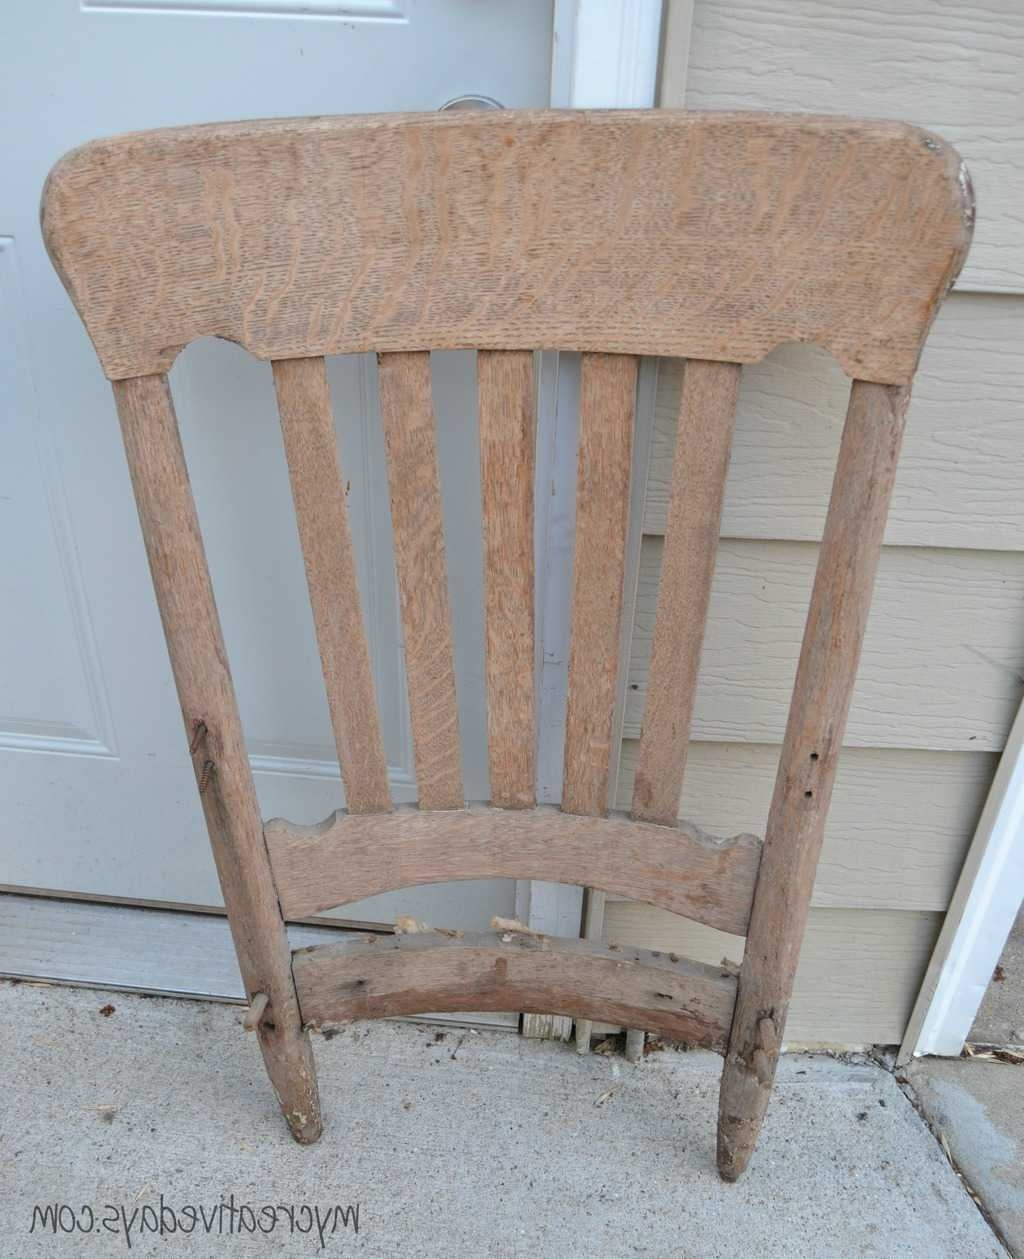 Upcycled Rocking Chairs Throughout Widely Used Diy Rocking Chair Upcycle Tutorial – My Creative Days (View 15 of 20)